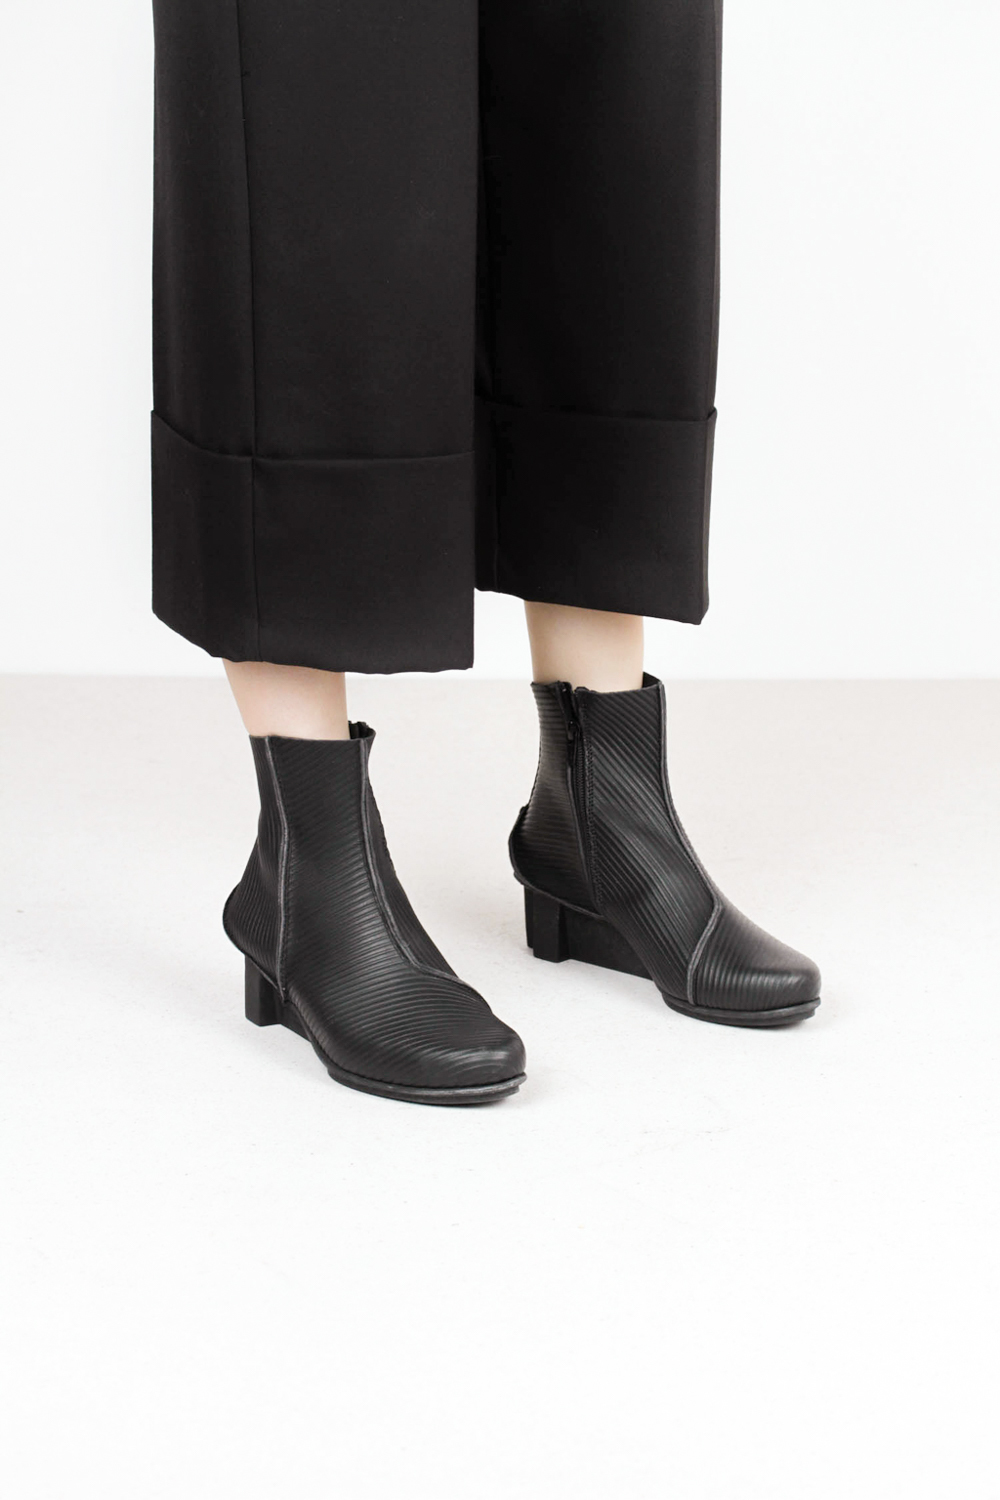 Trippen mere f blk crd xo blk kopie 3 leather boots